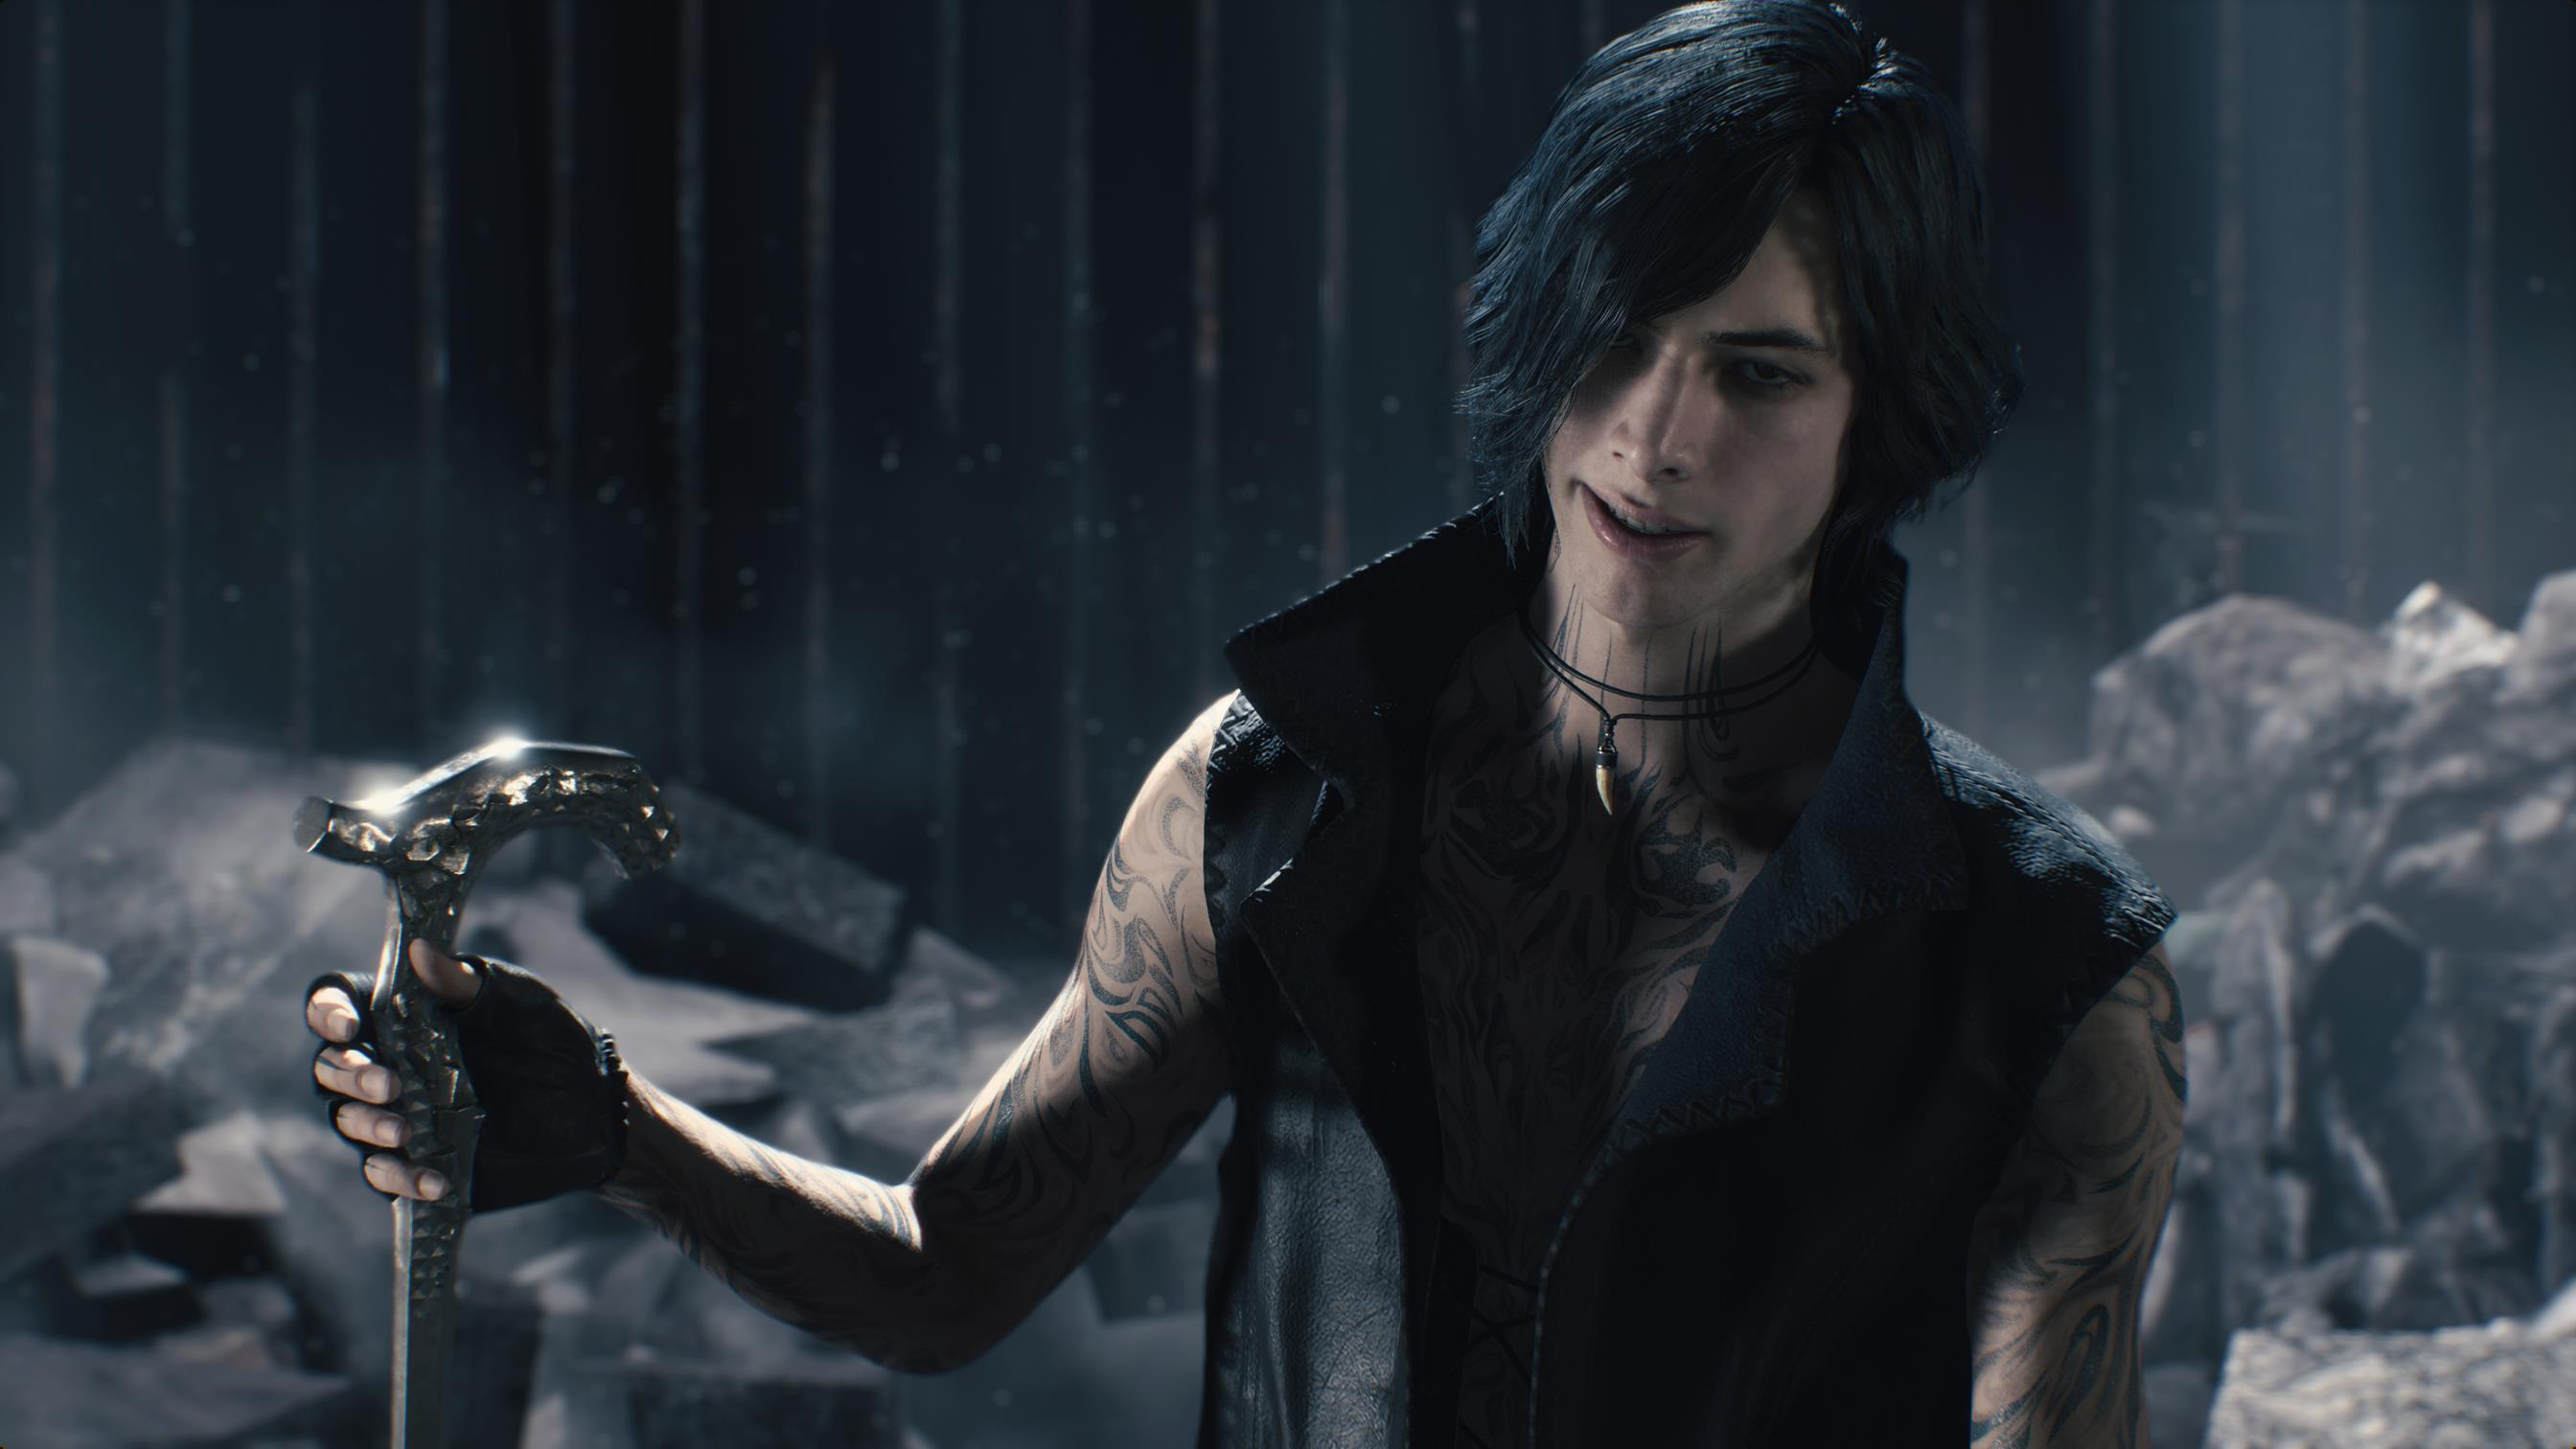 'Devil May Cry 5' Music Video Pulled Following Sexual Misconduct Reports